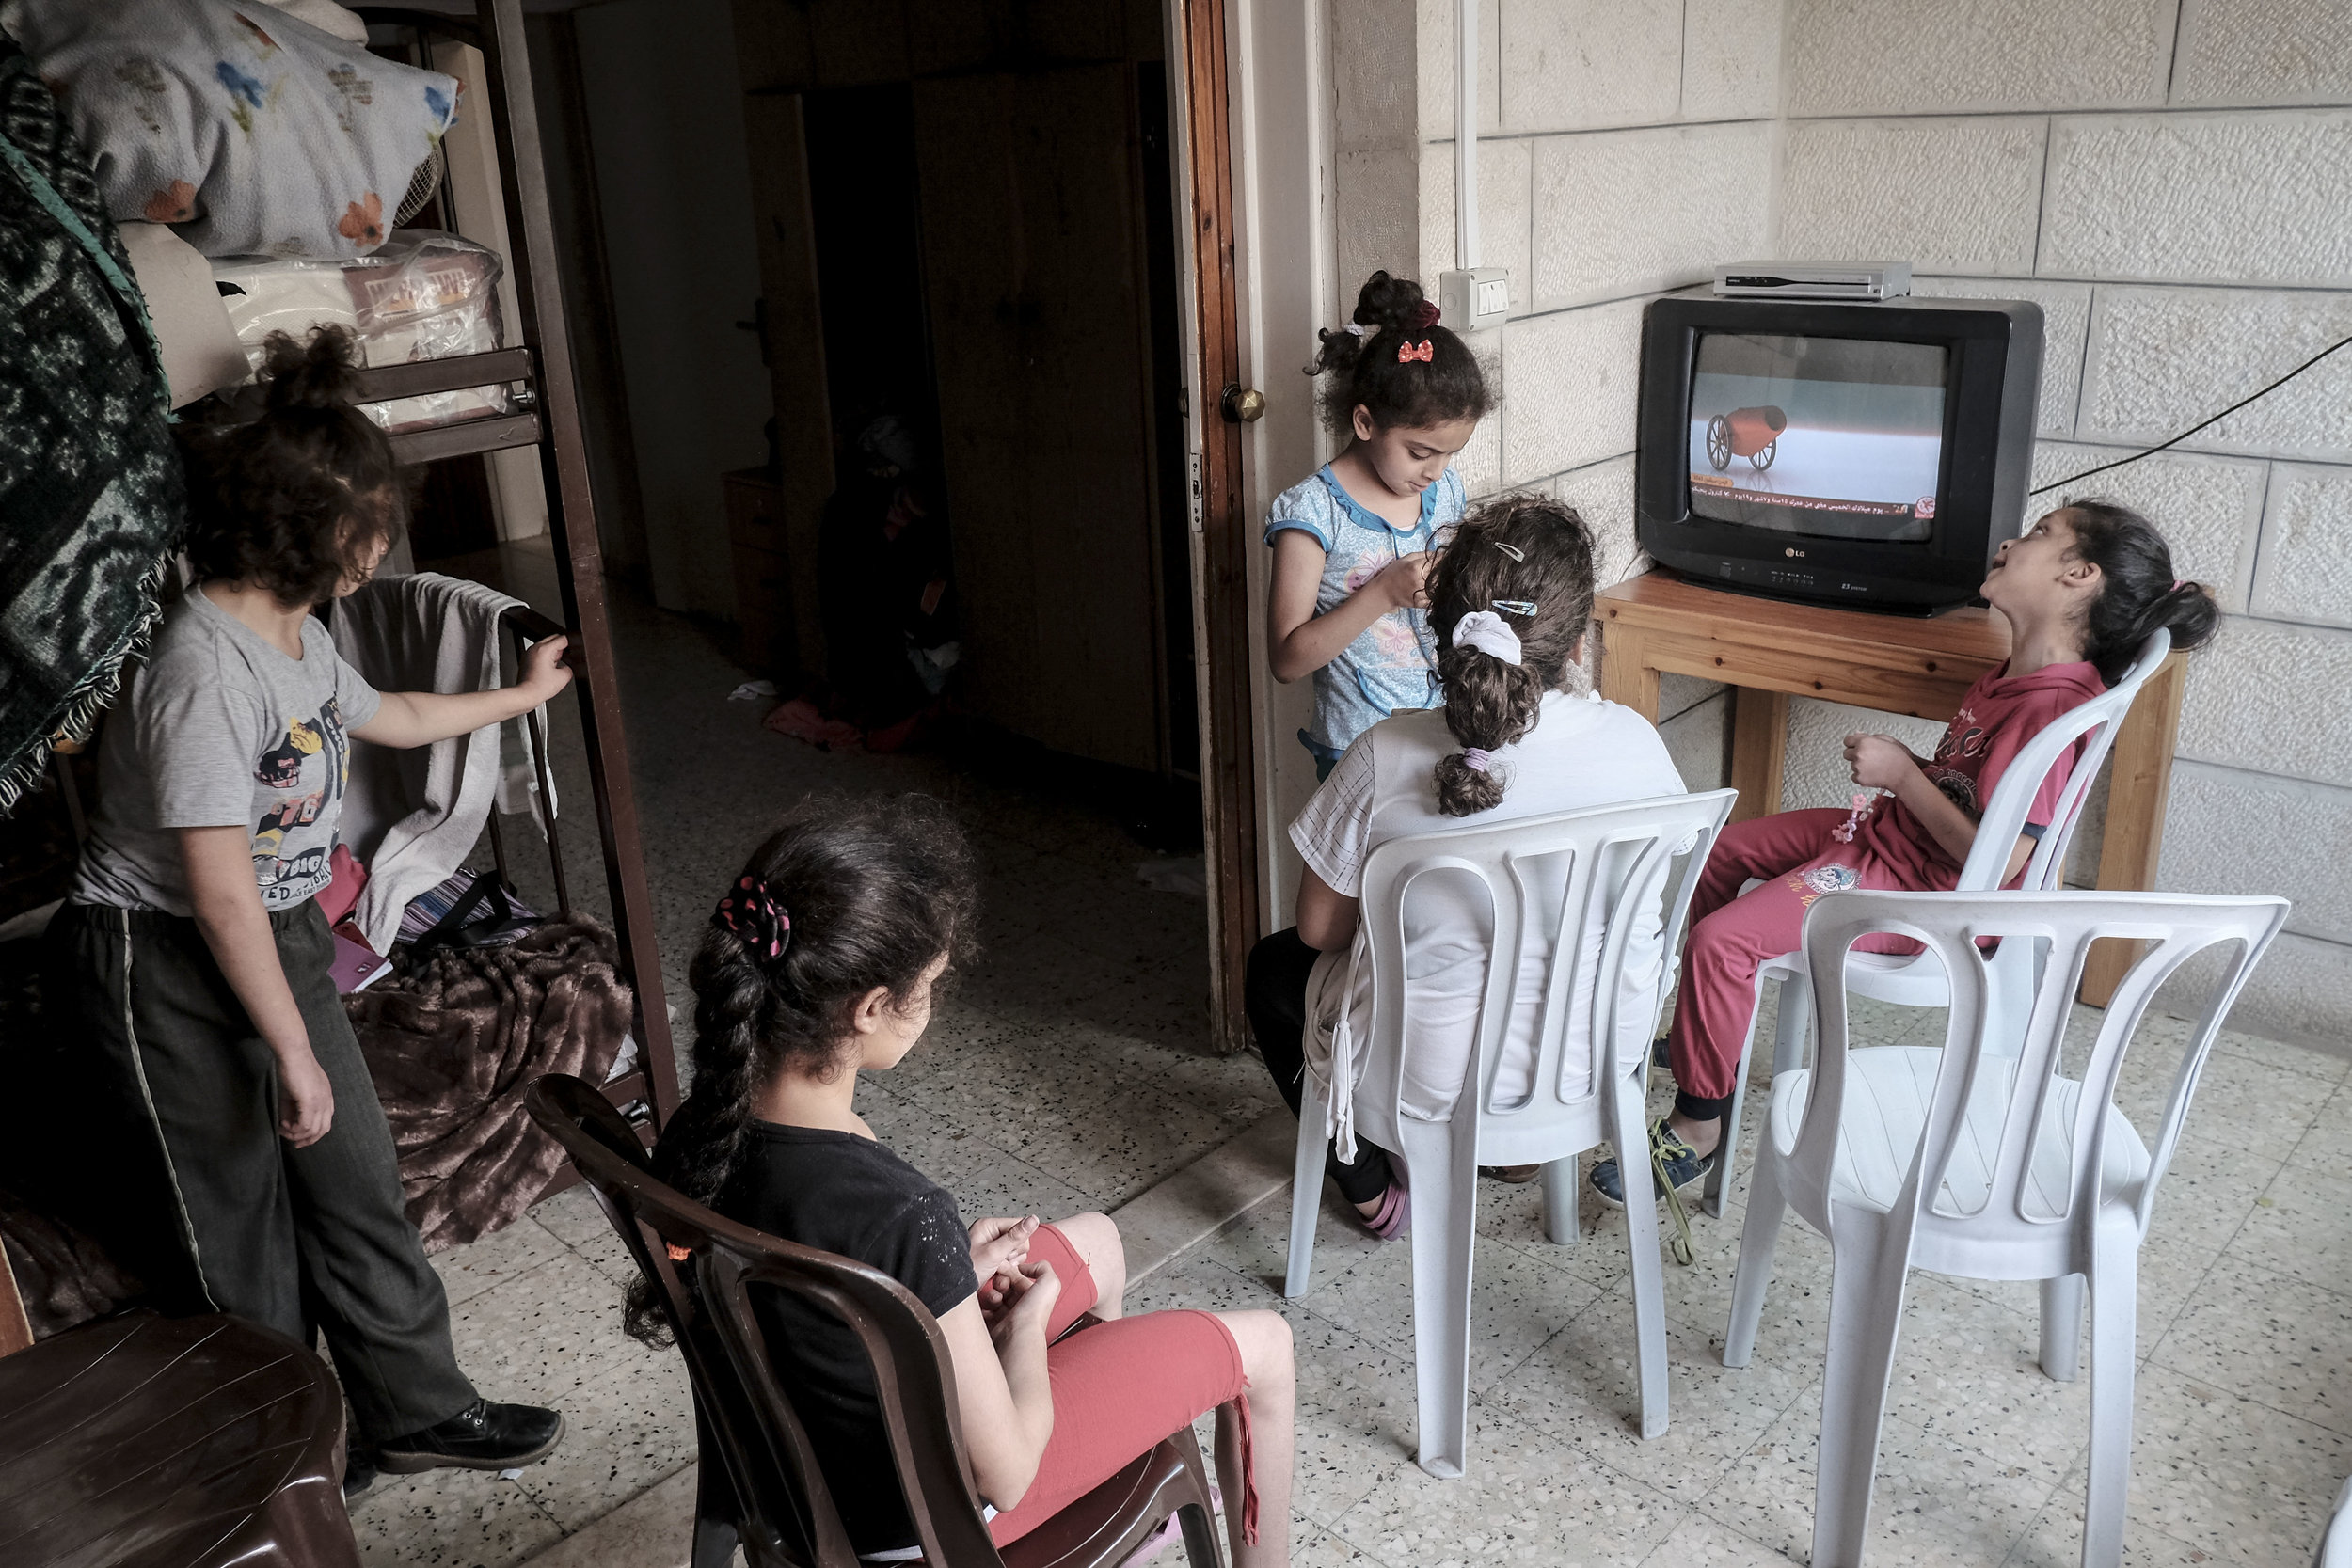 Students of the Peace Center for the Blind sing along to a television program at the Center's boarding house. Many of the students are from the West Bank, and during the schooling year live at the boarding house in East Jerusalem. Living together teaches the students social skills and self care, important skills that many are lacking when they first arrive.